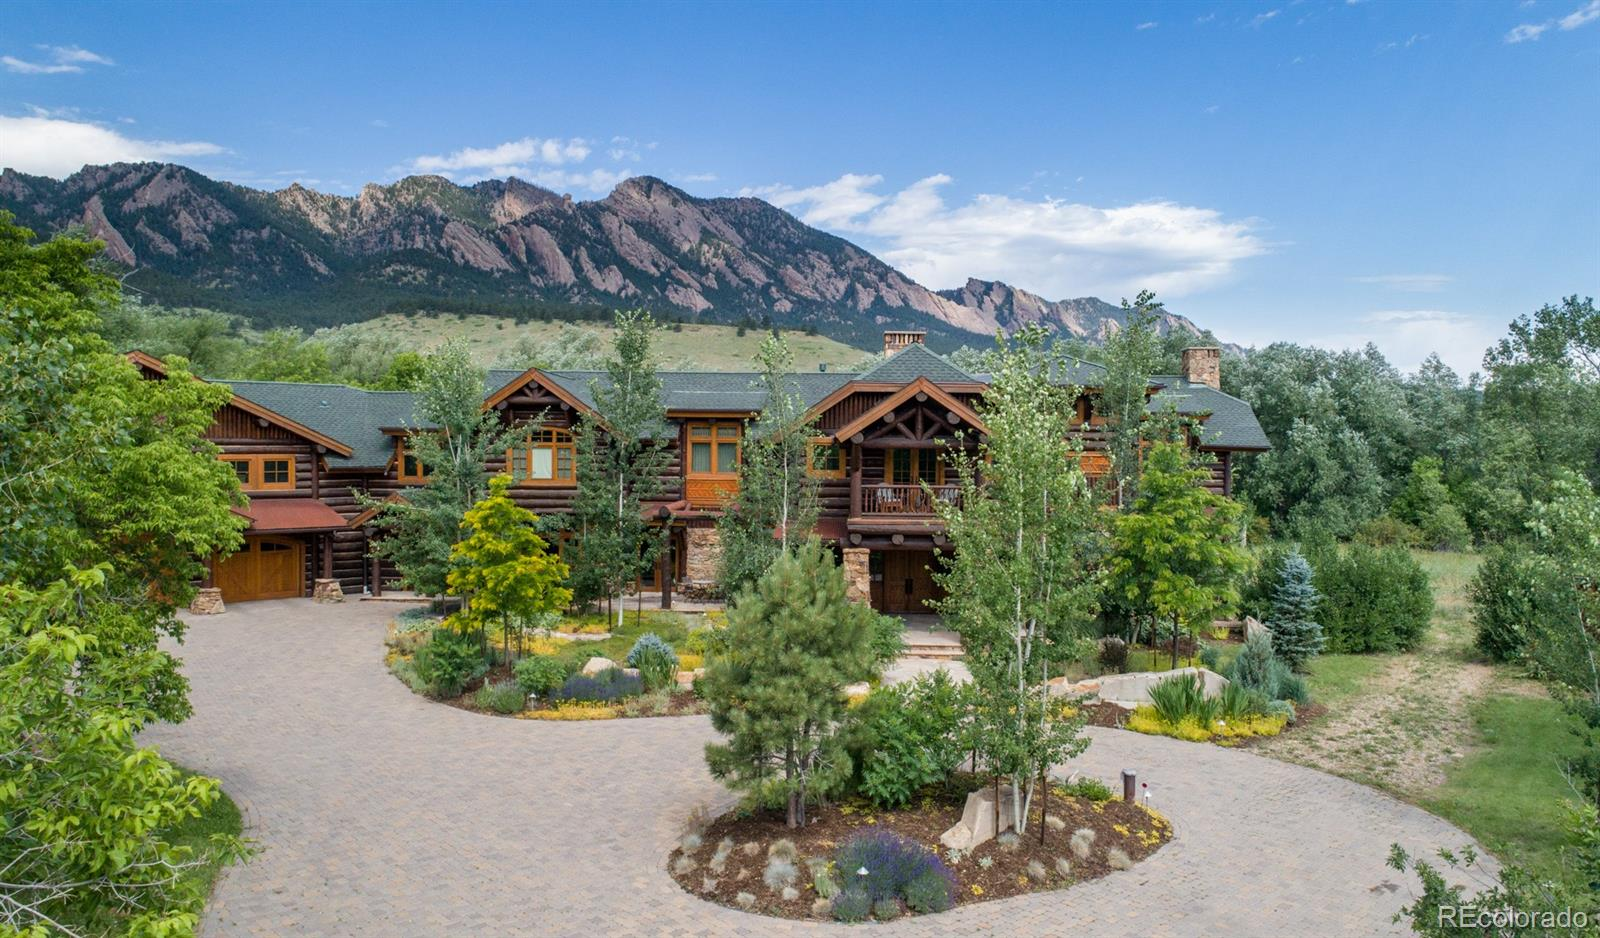 Eldorado Springs area Luxury Home crafted by master artisans. 4 bedrooms, 6 baths, 3-car garage, main floor guest suite, premier neighborhood, privacy and breathtaking mountain views, 5+ acres on S. Boulder Creek, minutes to central Boulder, easy access to Denver and Golden.  Outdoor activities hiking, cycling, climbing, horse trails.  Superb living with state-of-the-art amenities: Gourmet Chef's kitchen, multiple entertaining areas, 5 fireplaces, grand master suite, impressive views from nearly every room, luxury outdoor/indoor living, oversized spa, BBQ, Creekside patio with fire pit.